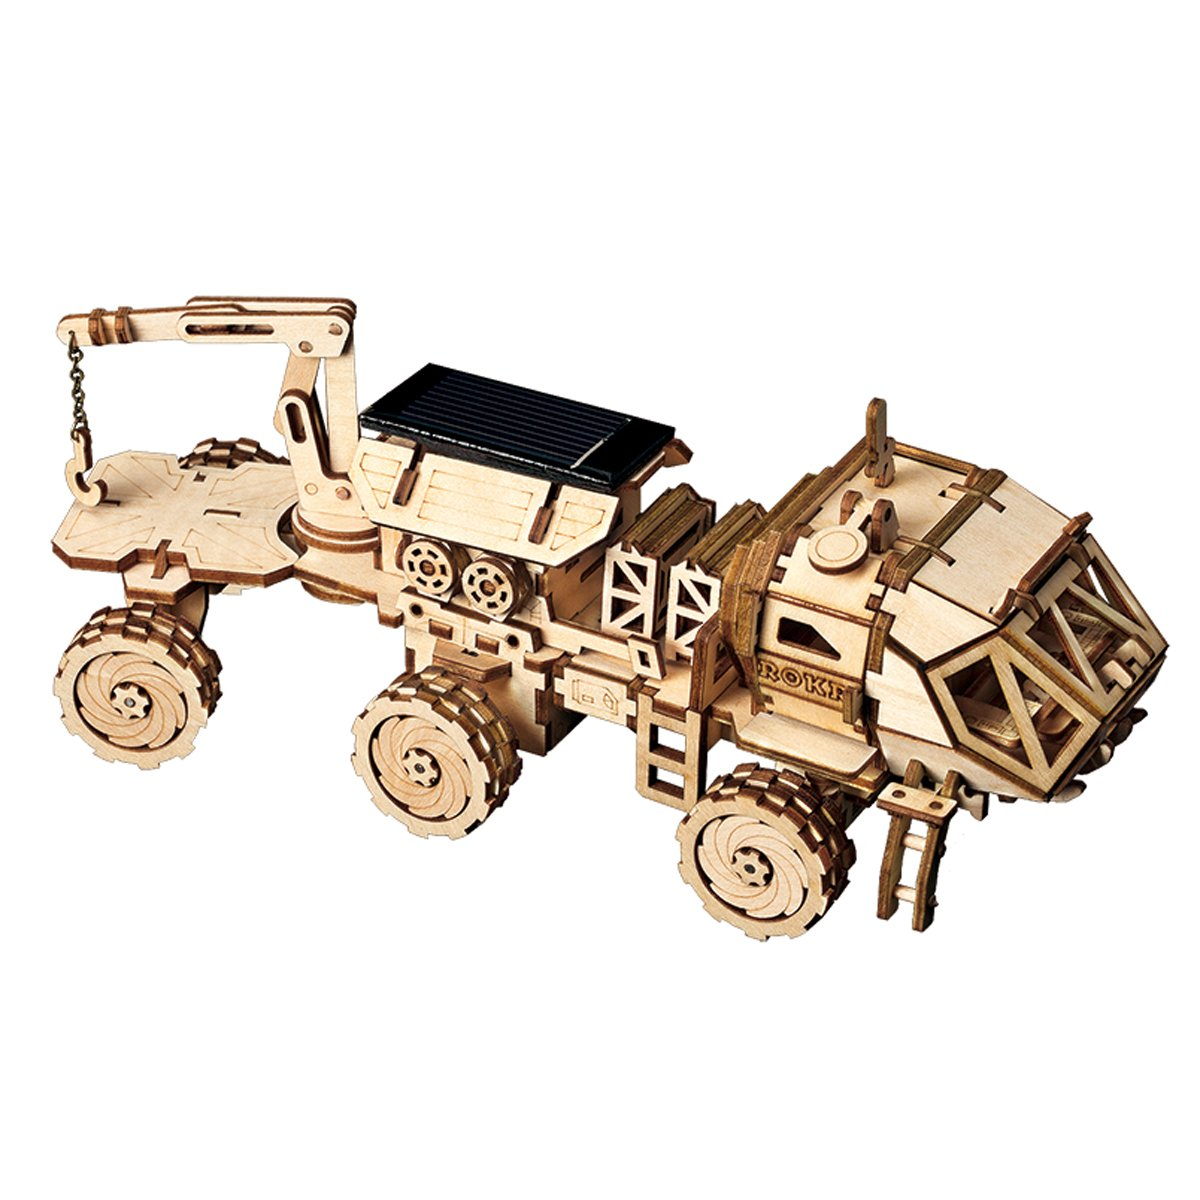 ROKR Assemble Solar Energy Powered Cars-Moveable 3D Wooden Puzzle Toys-Funny Teaching Educational-Home Deco-Model Building Sets-Best Christmas,Birthday Gift by ROKR